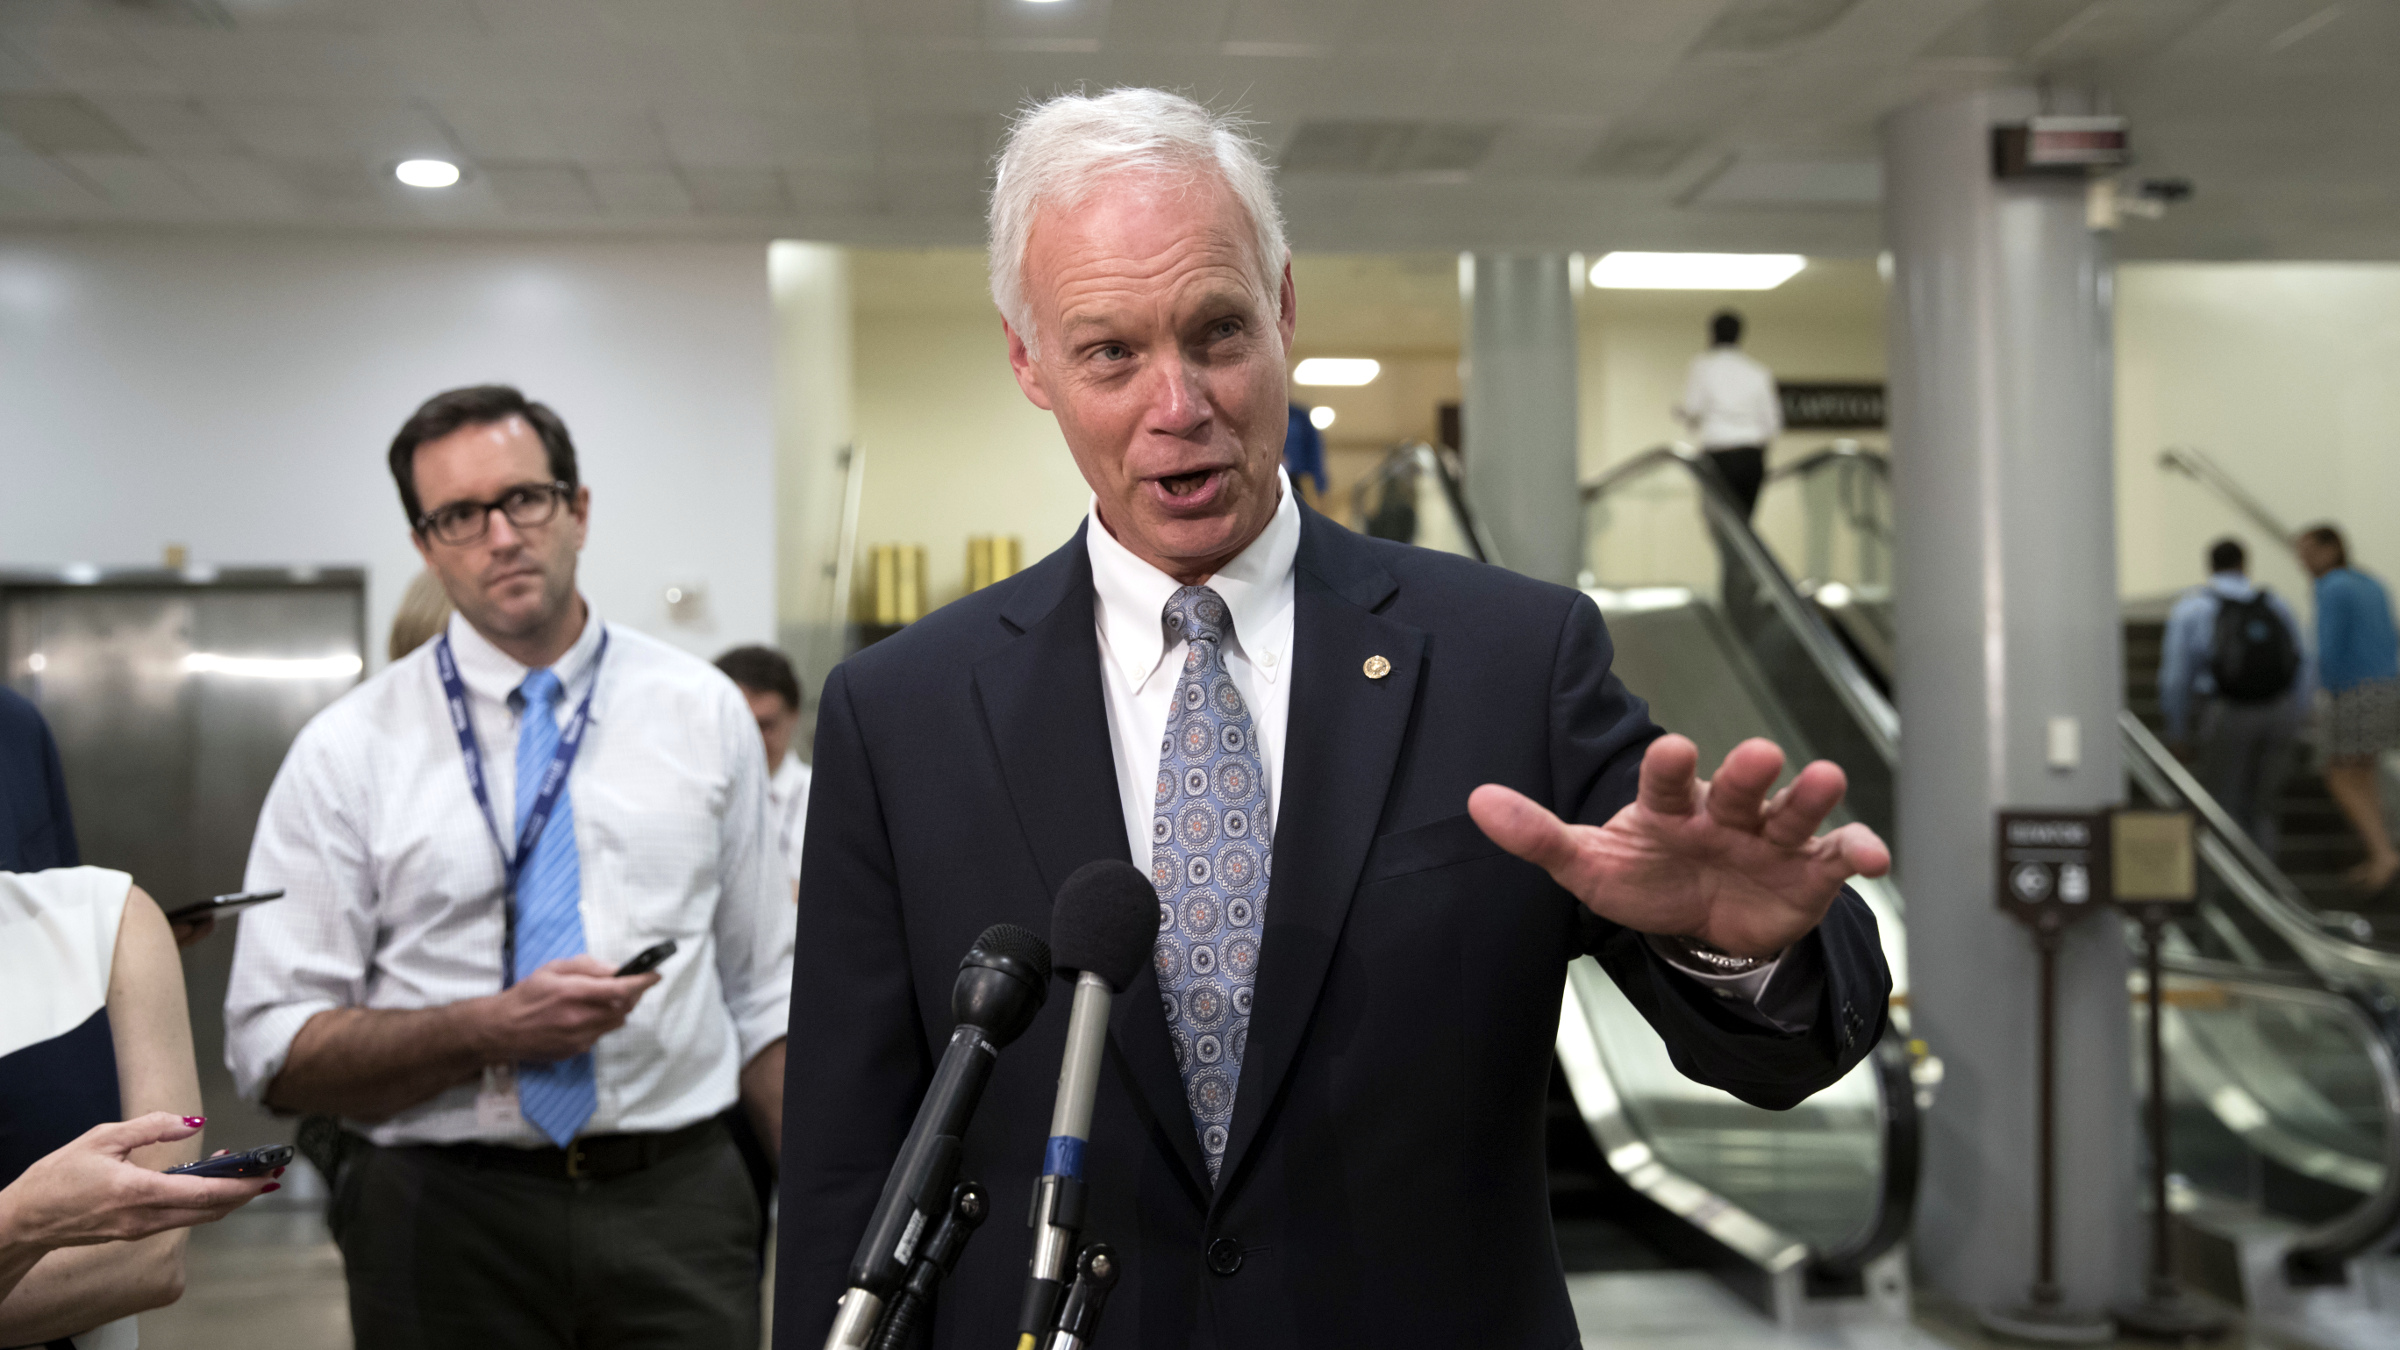 Senate Foreign Relations Committee member Sen. Ron Johnson, R-Wis. talks to reporters on Capitol Hill Washington, Wednesday, Aug. 2, 2017.